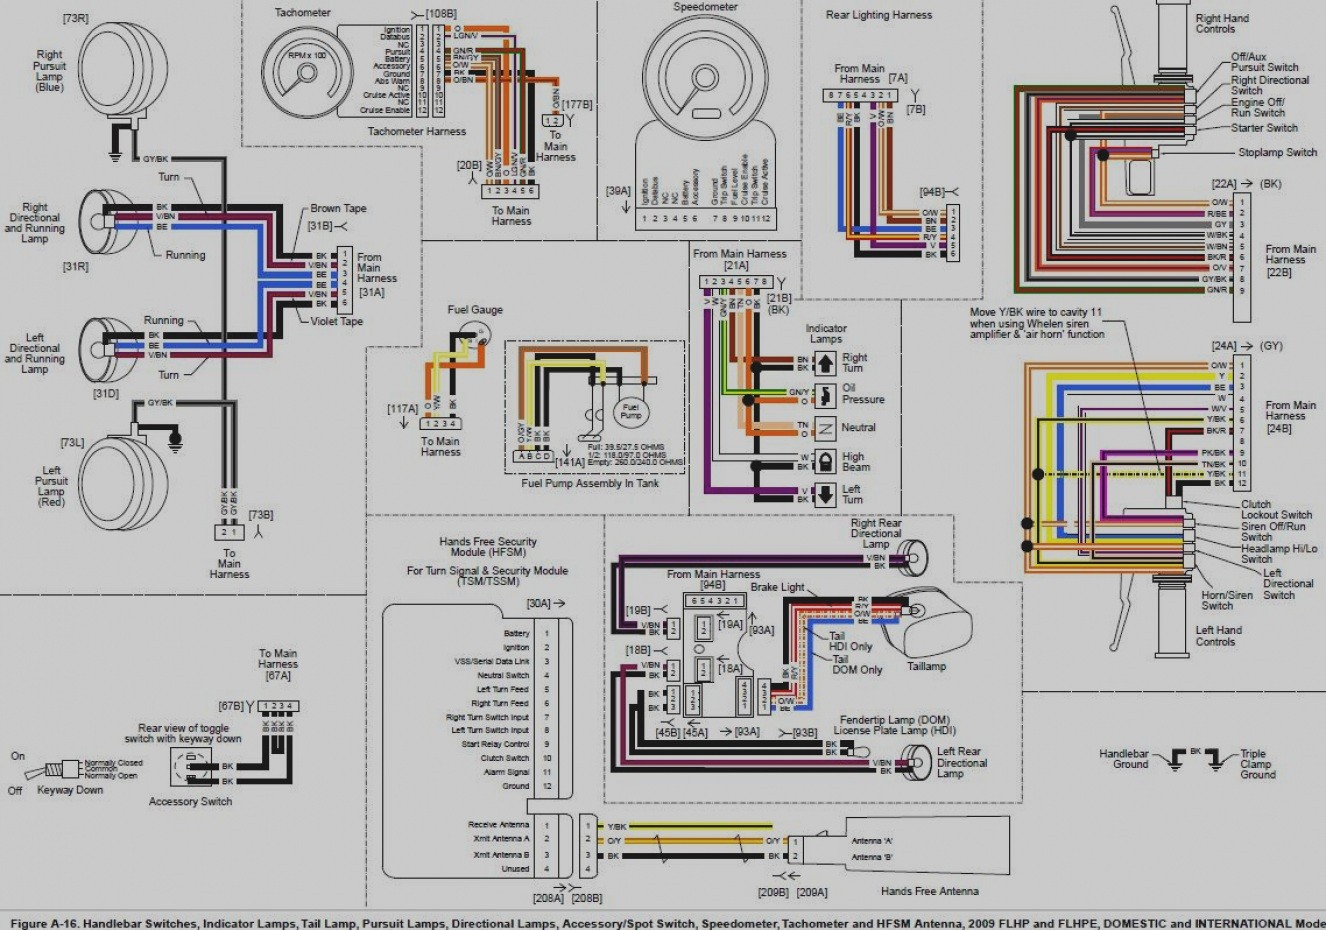 Harley Wiring Diagram Wires - Wiring Diagram User on harley evo clutch, harley evo engine rebuild, harley evo oiling system, harley evo upgrades, harley evo components, harley evo frame, harley evo pipes, harley evo parts, harley evo motors, harley evo ignition, harley evo oil, harley evo stator, harley evo charging system, harley evo power, harley evo heads, harley evo maintenance, harley evo tools, harley evo speed sensor, harley evo diagram, harley evo exhaust,